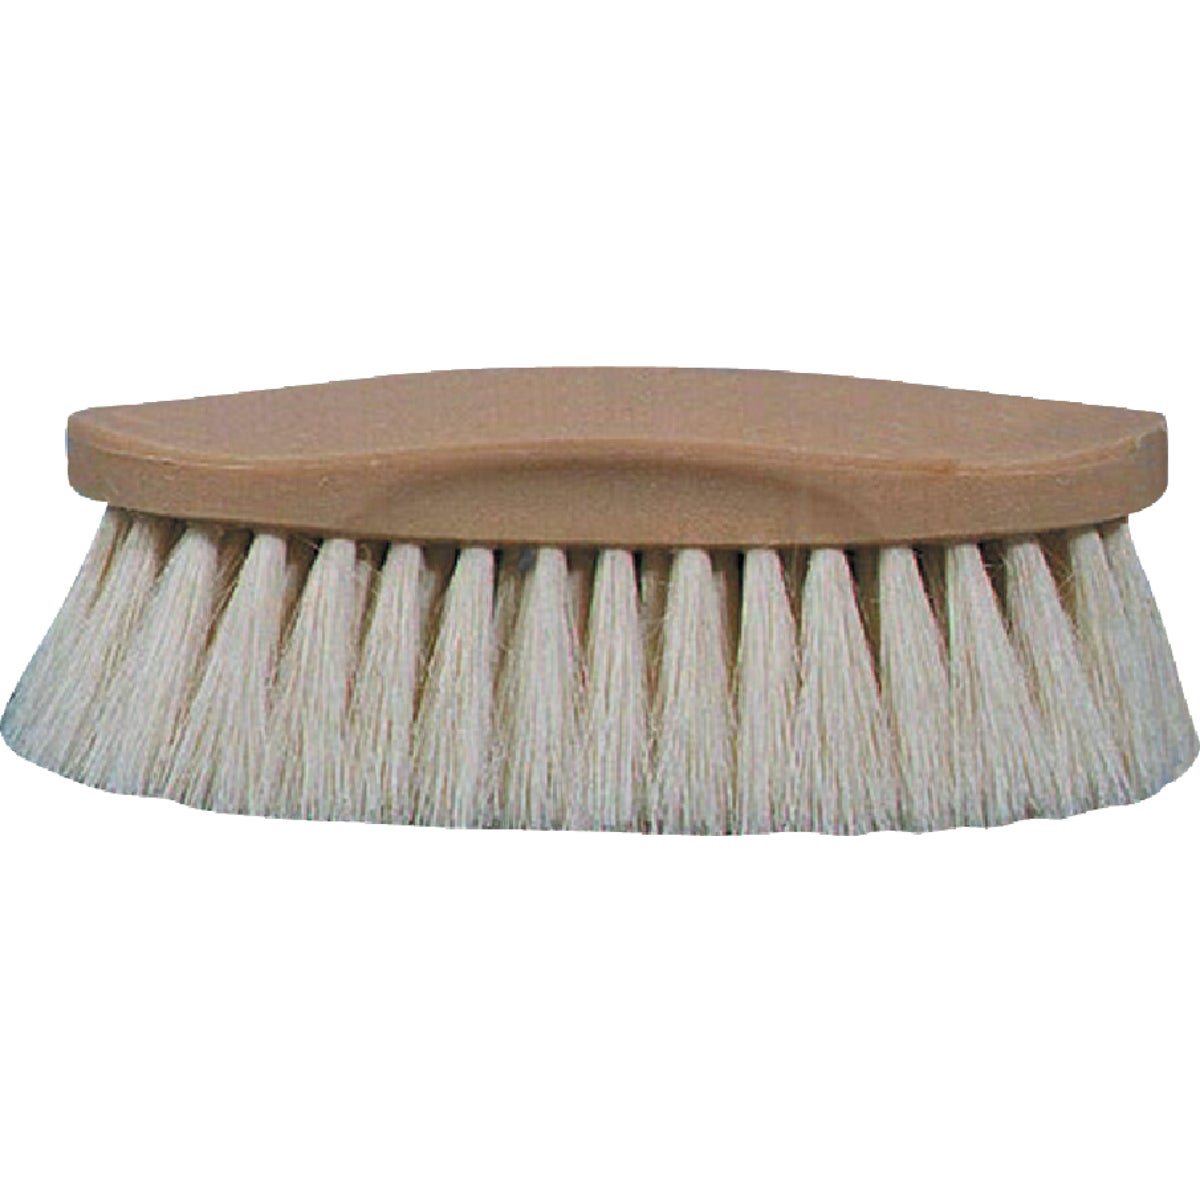 NATURAL TAMPICO BRUSH - 50 by Decker Manufacturing